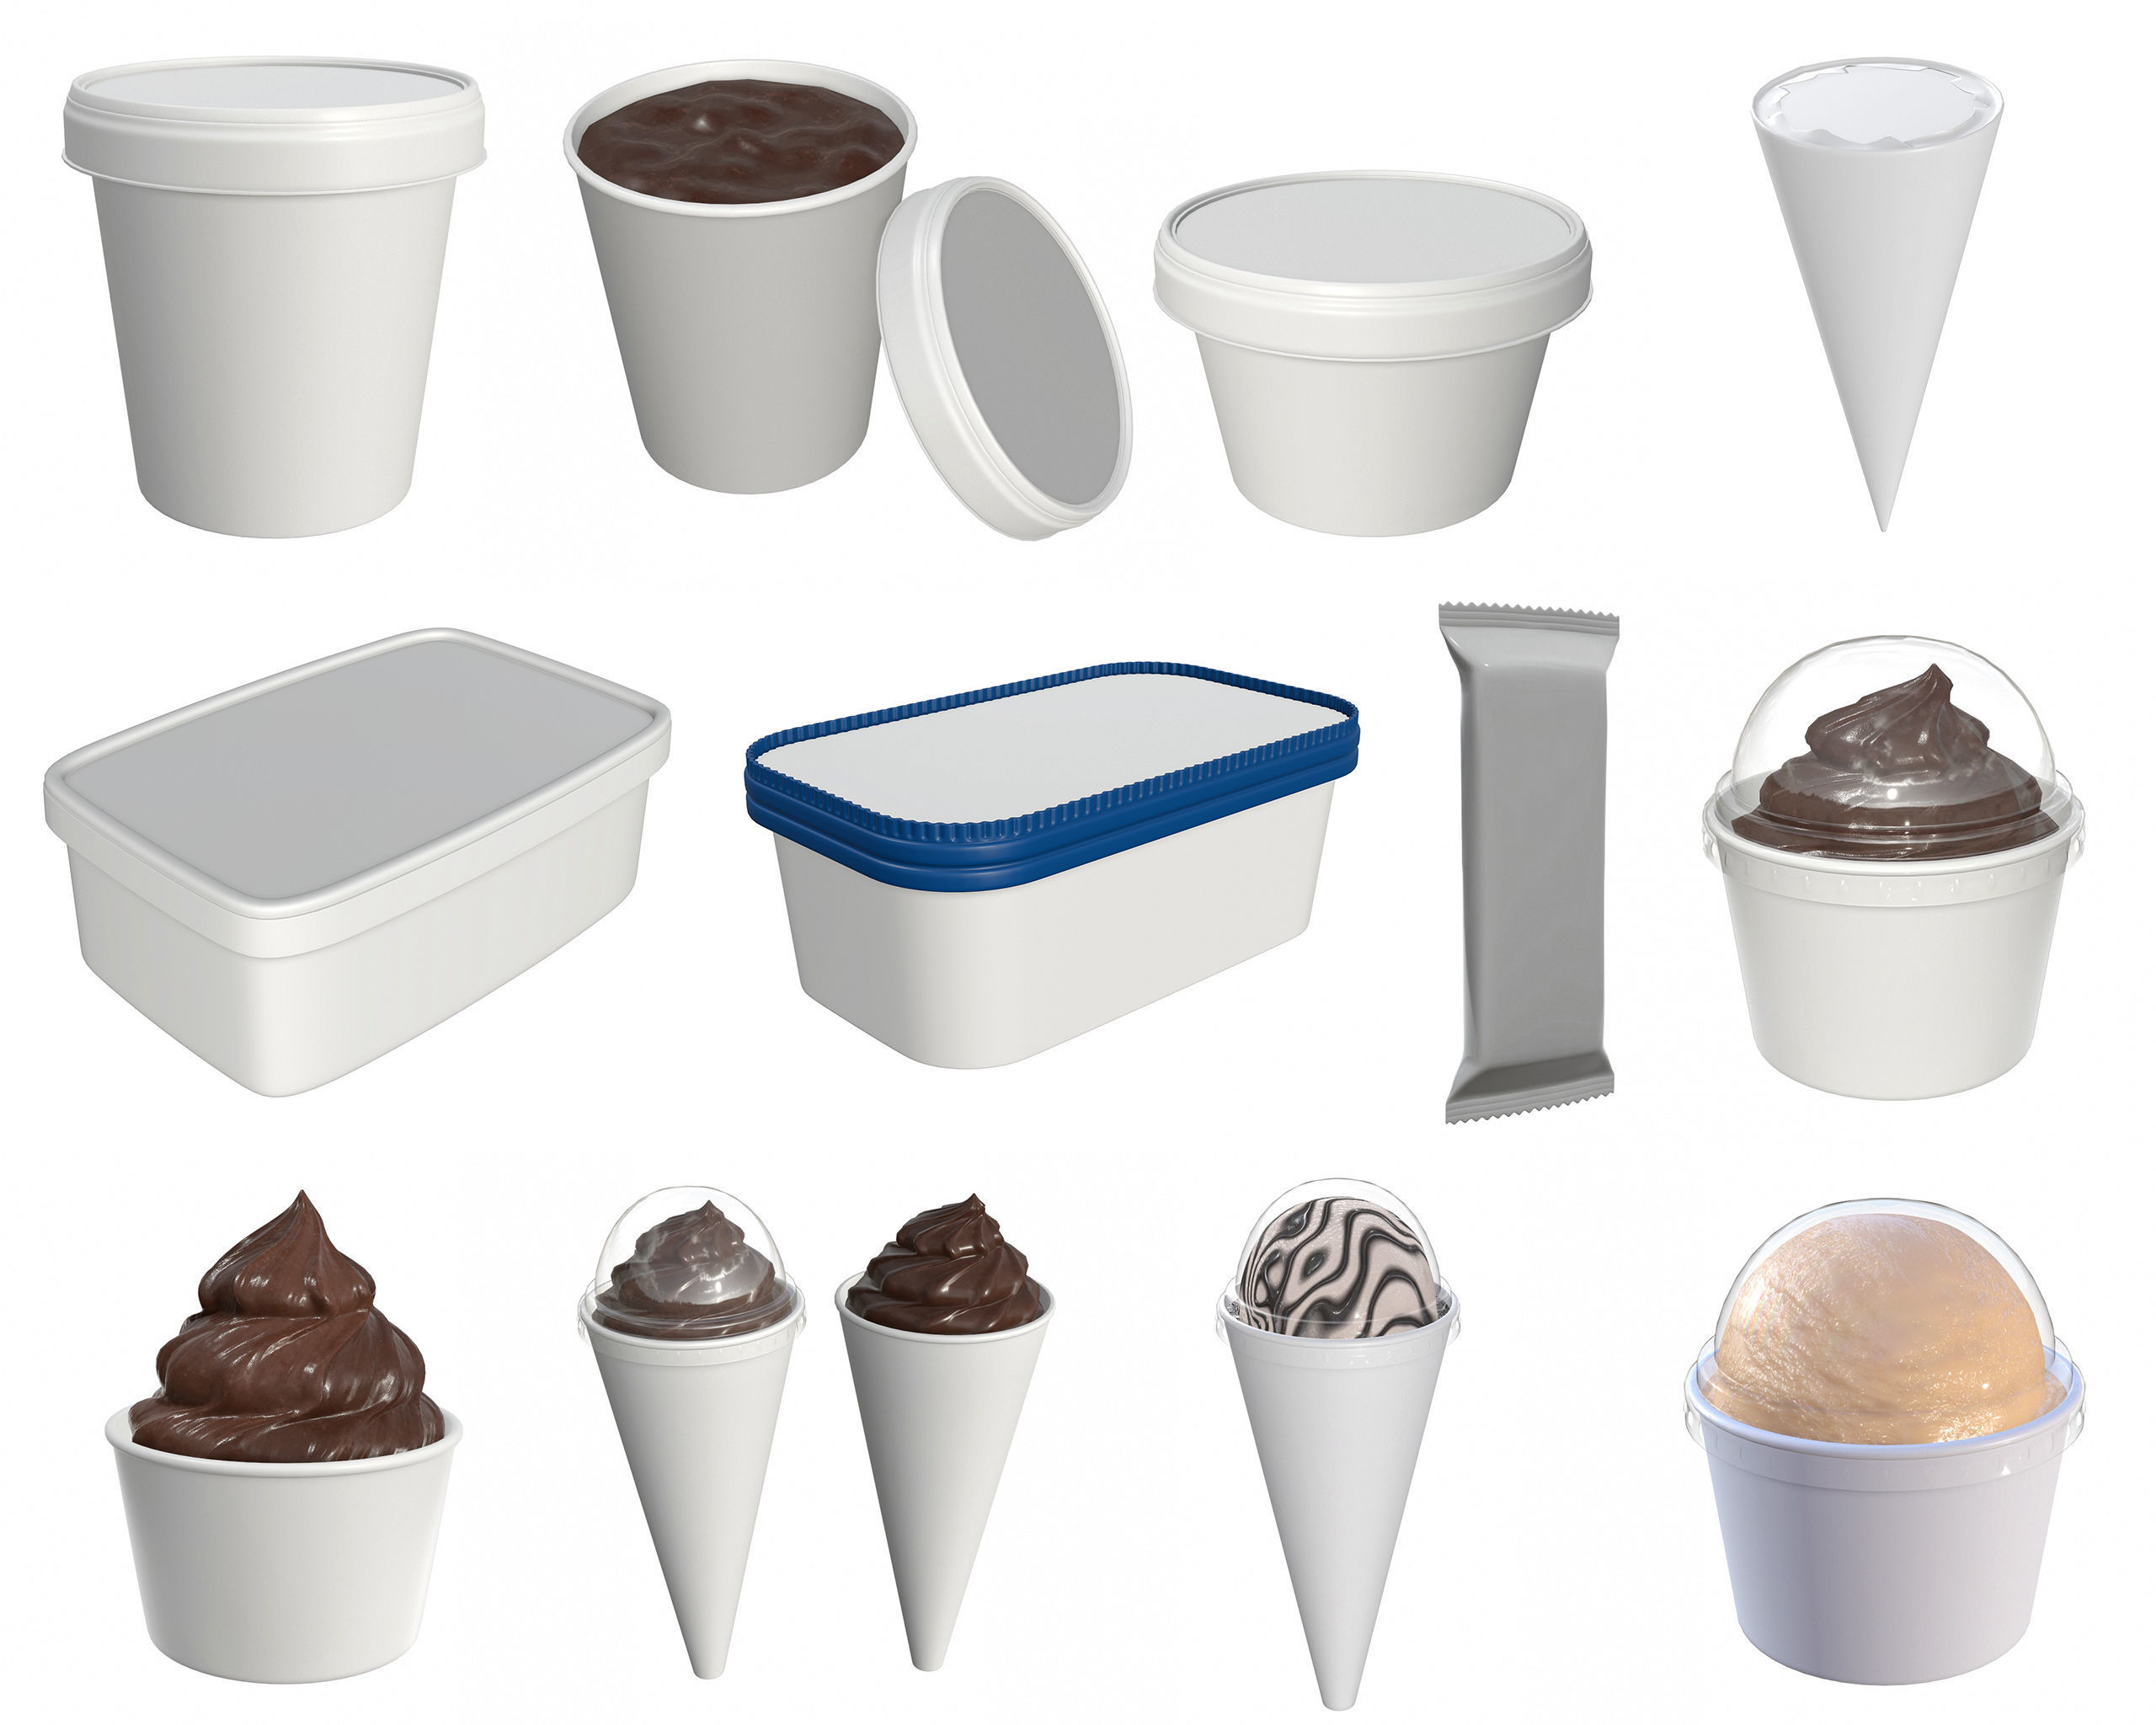 Ice cream packaging for mock up | 3D Model Collection